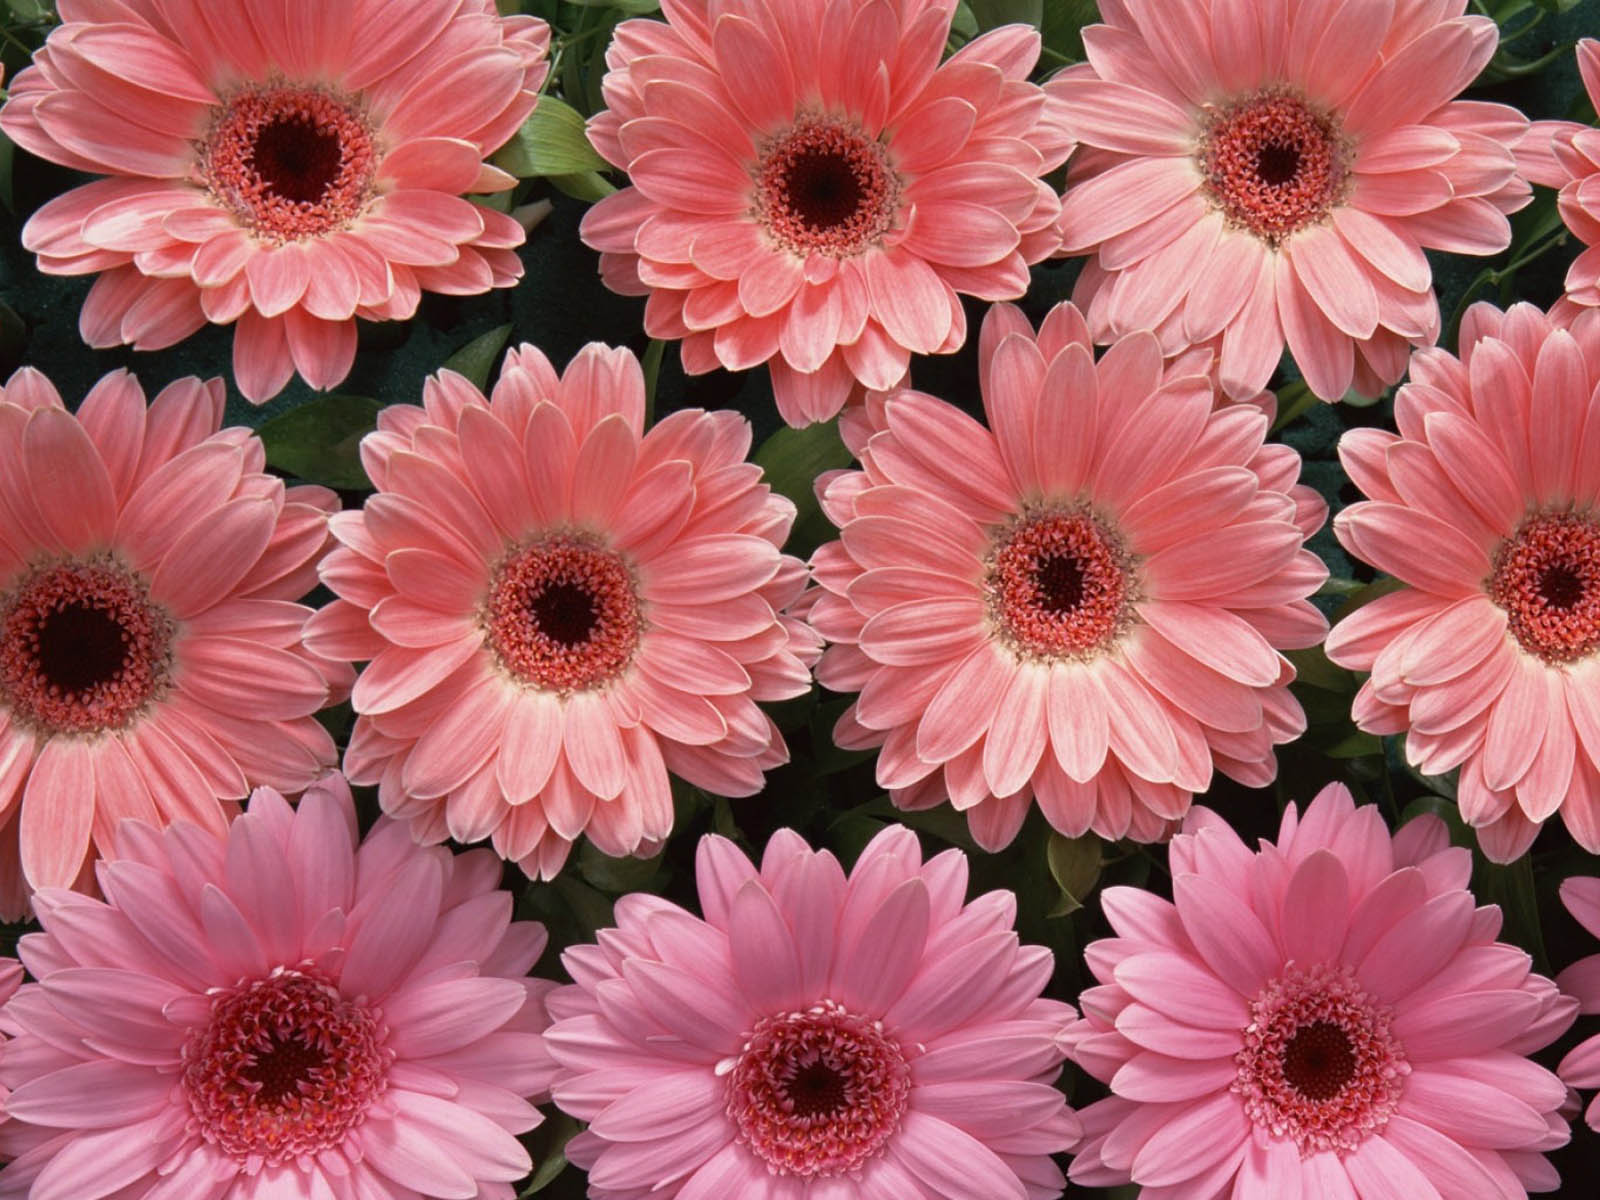 Pink Flowers Wallpapers:wallpapers Screensavers